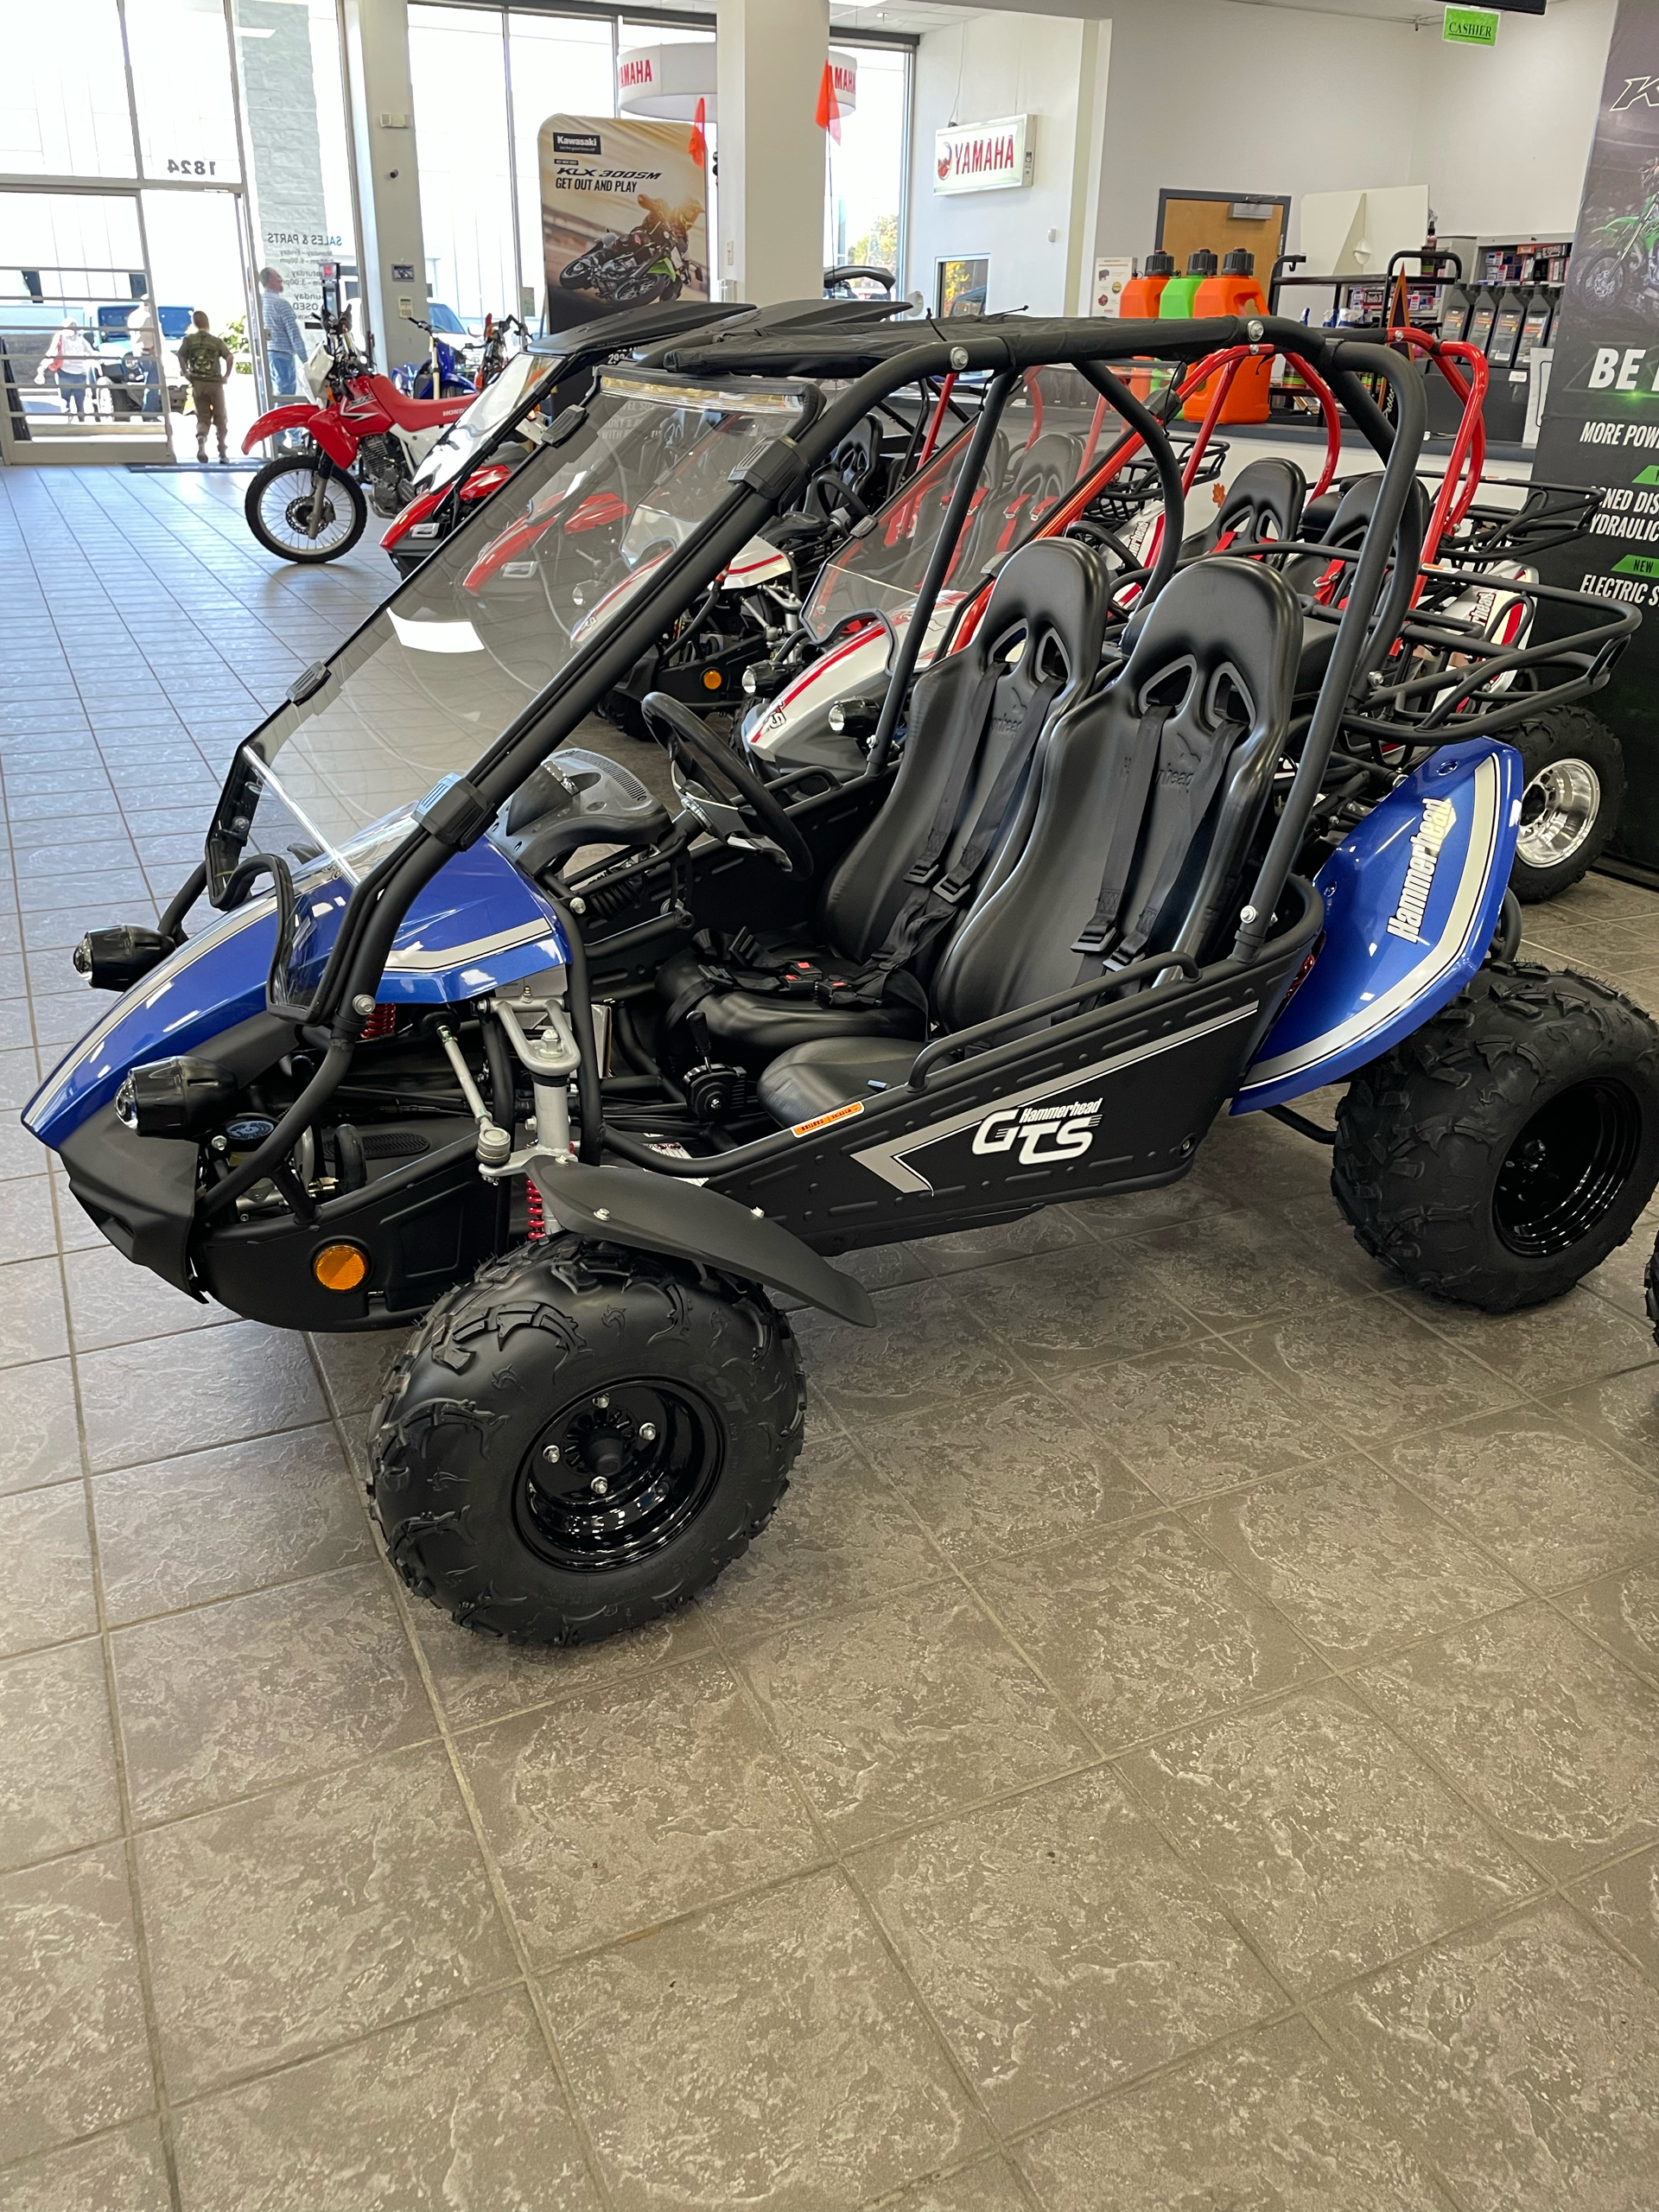 2020 HAMMERHEAD OFF-ROAD GTS 150 FOR SALE IN HICKORY